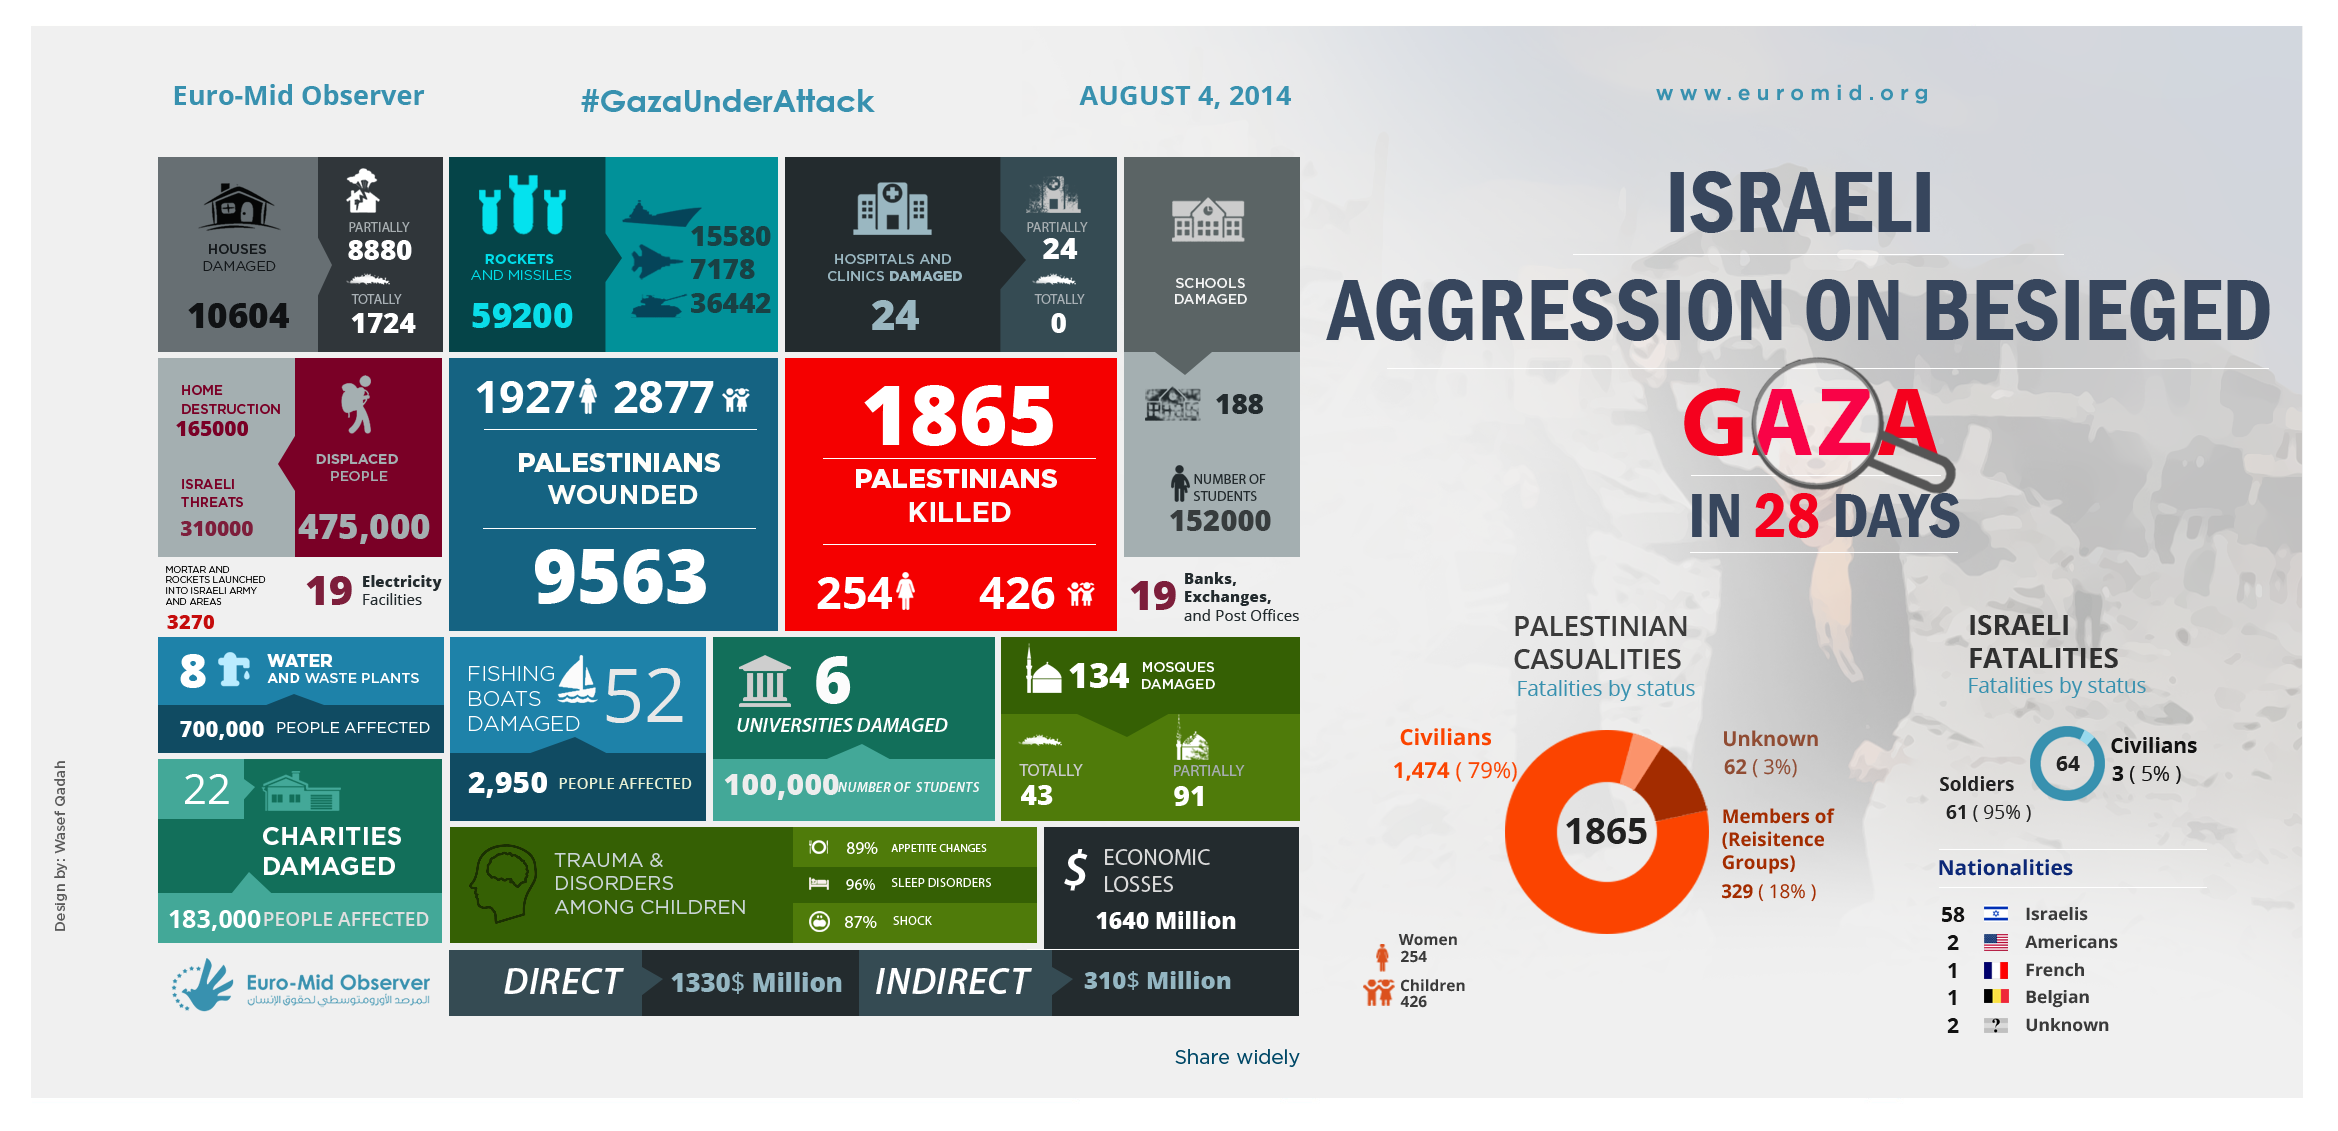 Israeli Aggression on besieged Gaza in 28 Days